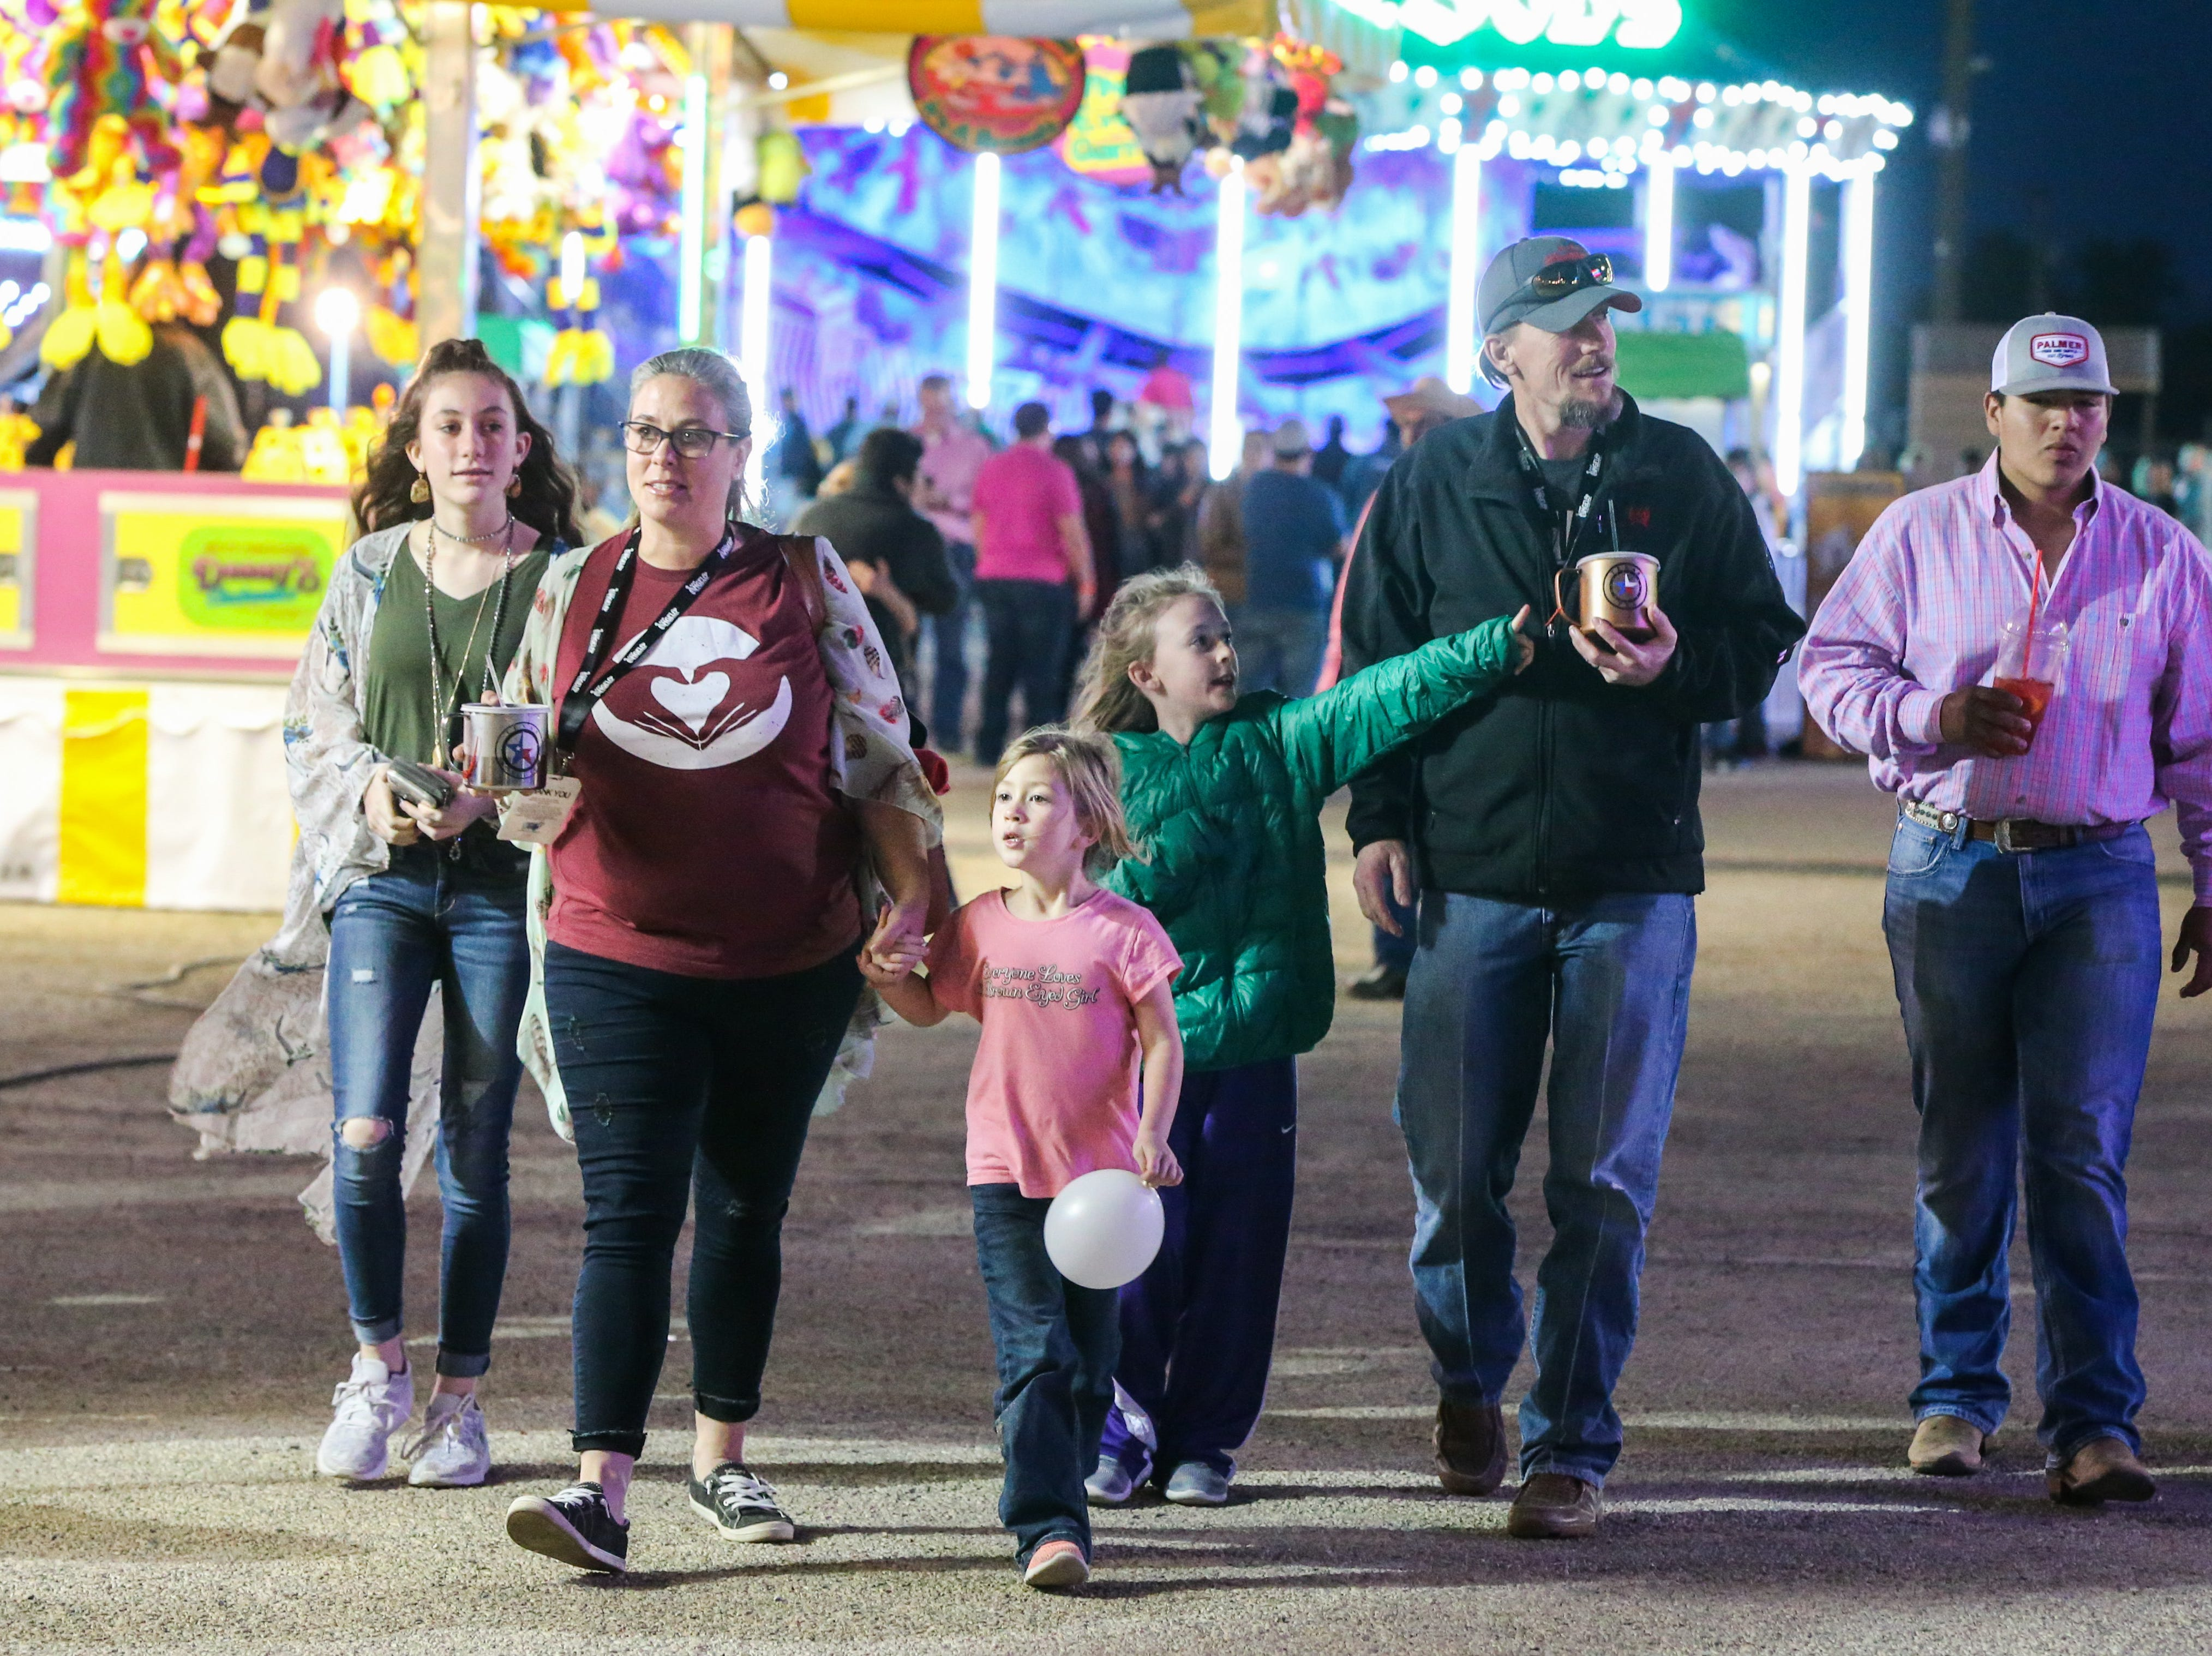 The Halliburton family walks around the carnival during the San Angelo Stock Show & Rodeo Thursday, Feb. 14, 2019, at the fairgrounds.